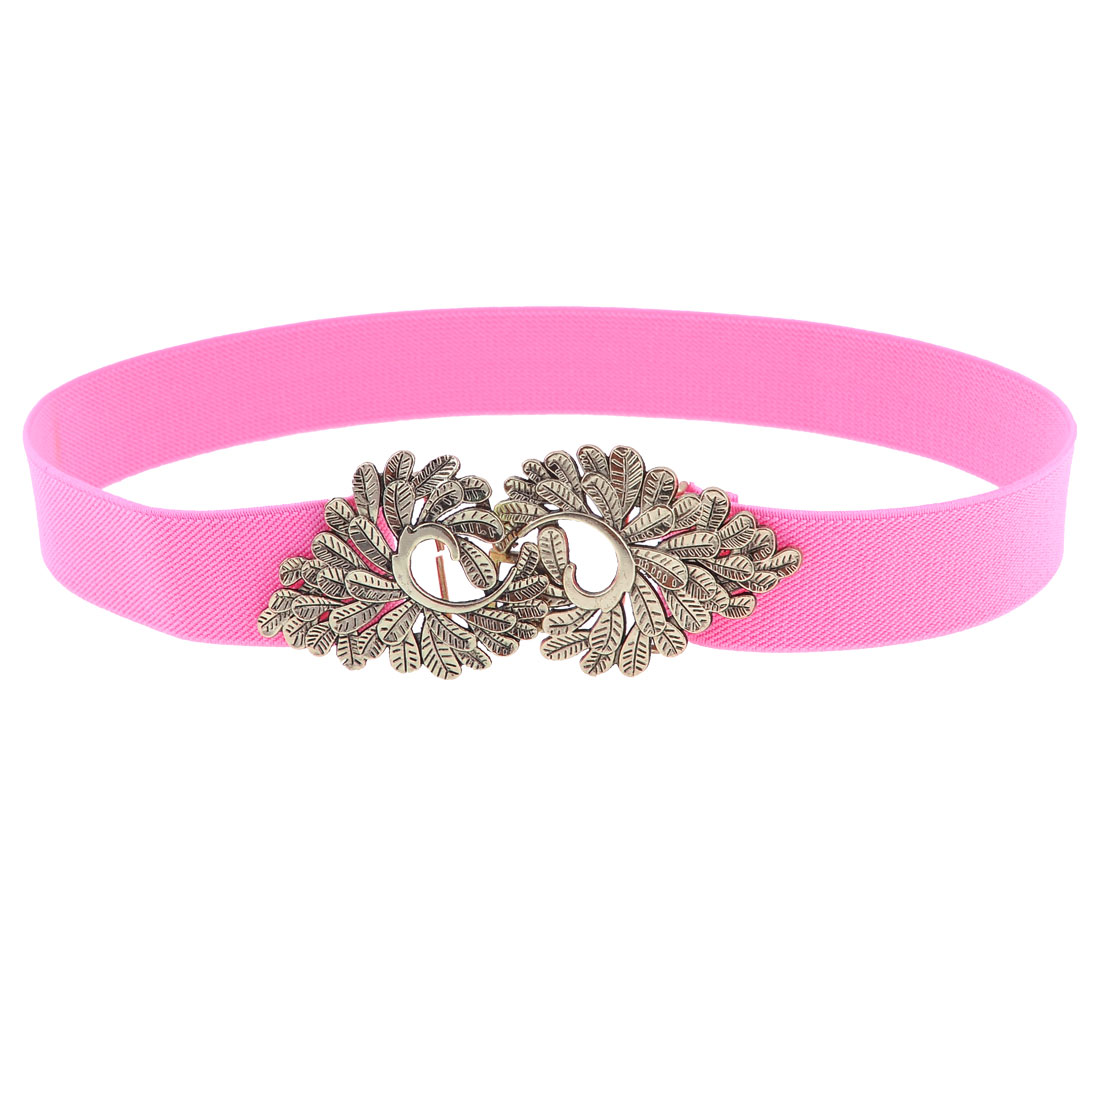 Pink Elastic Stretchy Band Lavies Shape Buckle Belt for Ladies